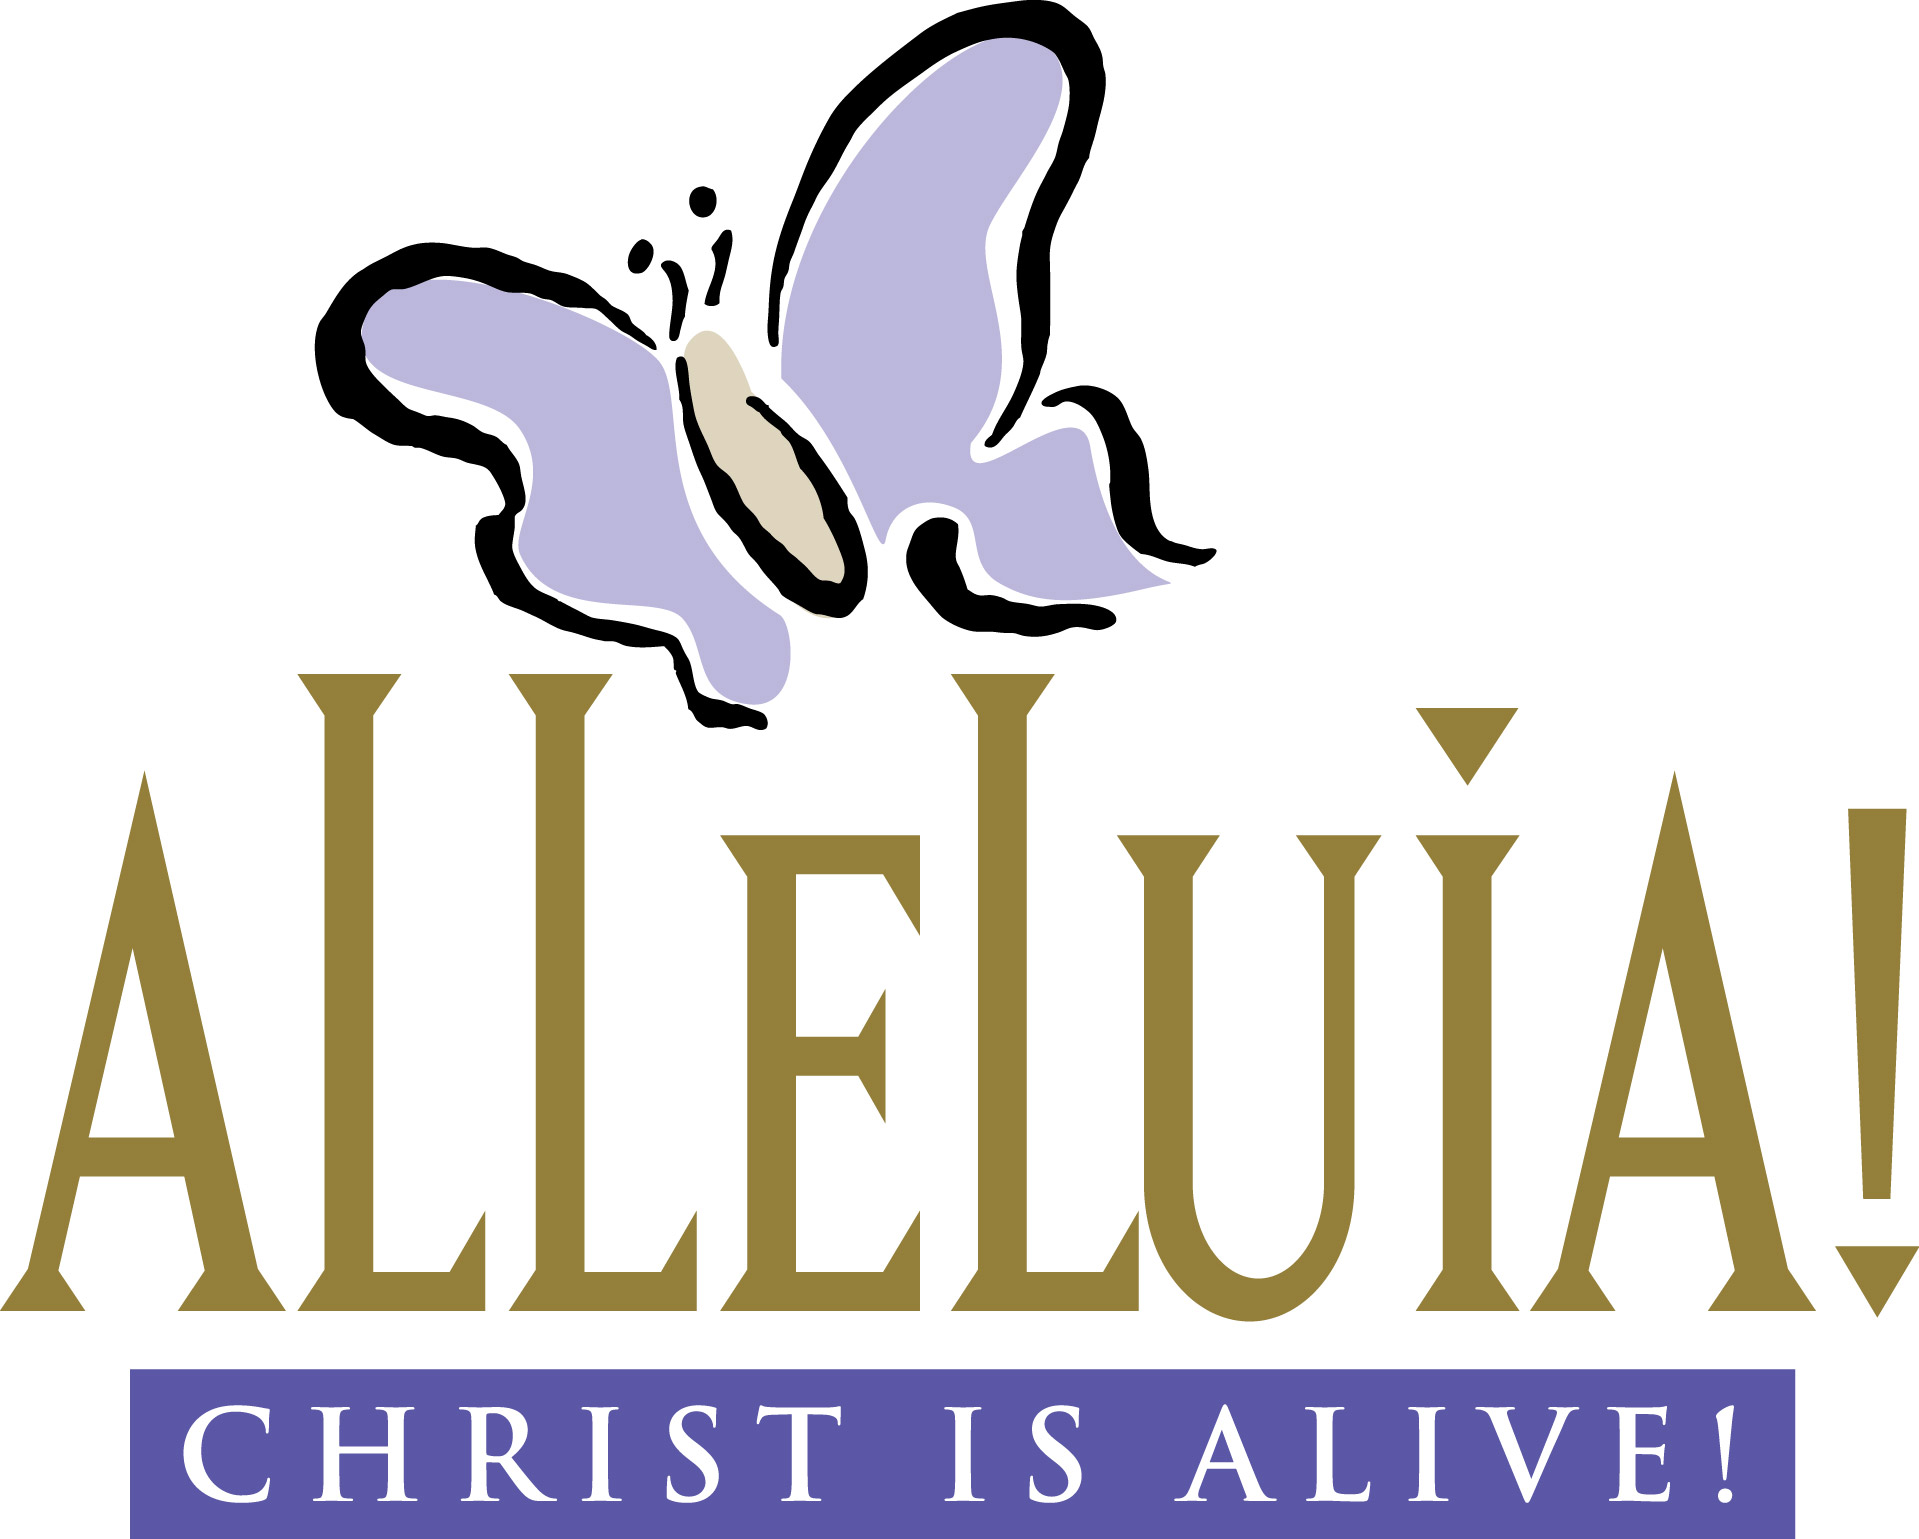 easter christ the king lutheran church he is risen clipart black and white he is risen clipart for digital sign